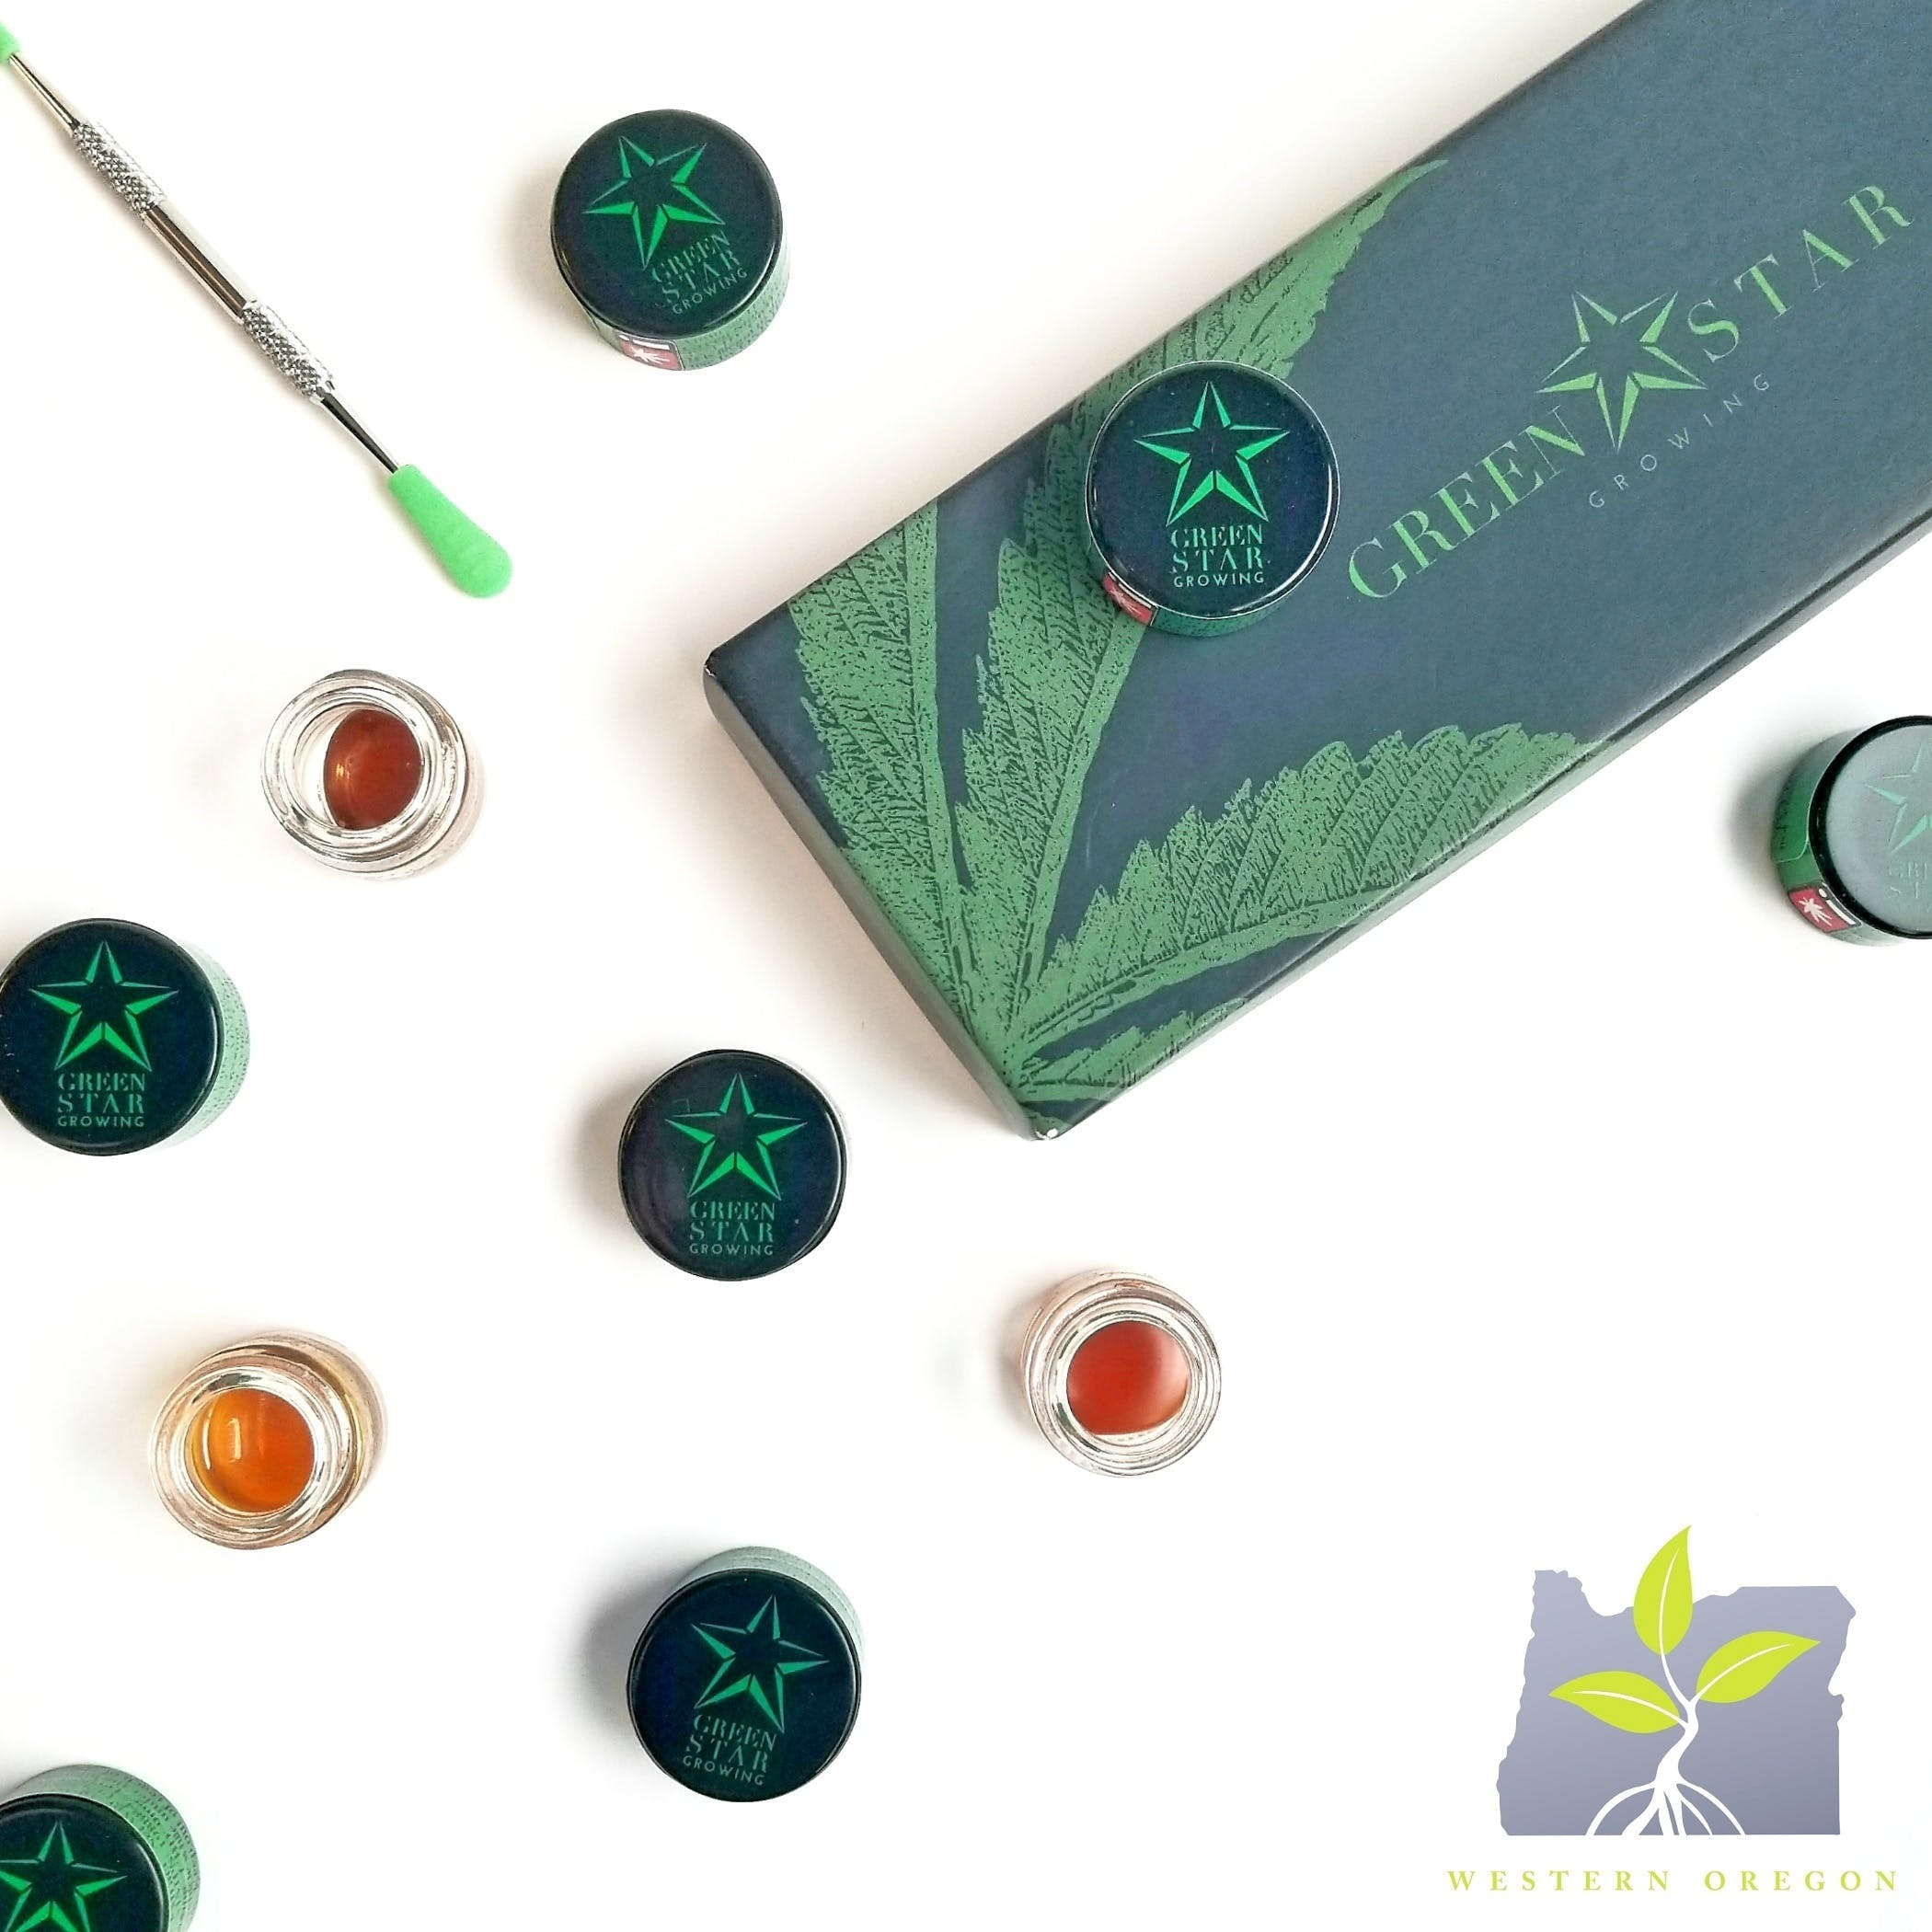 concentrate-taffy-dabs-white-widow-co2-sale